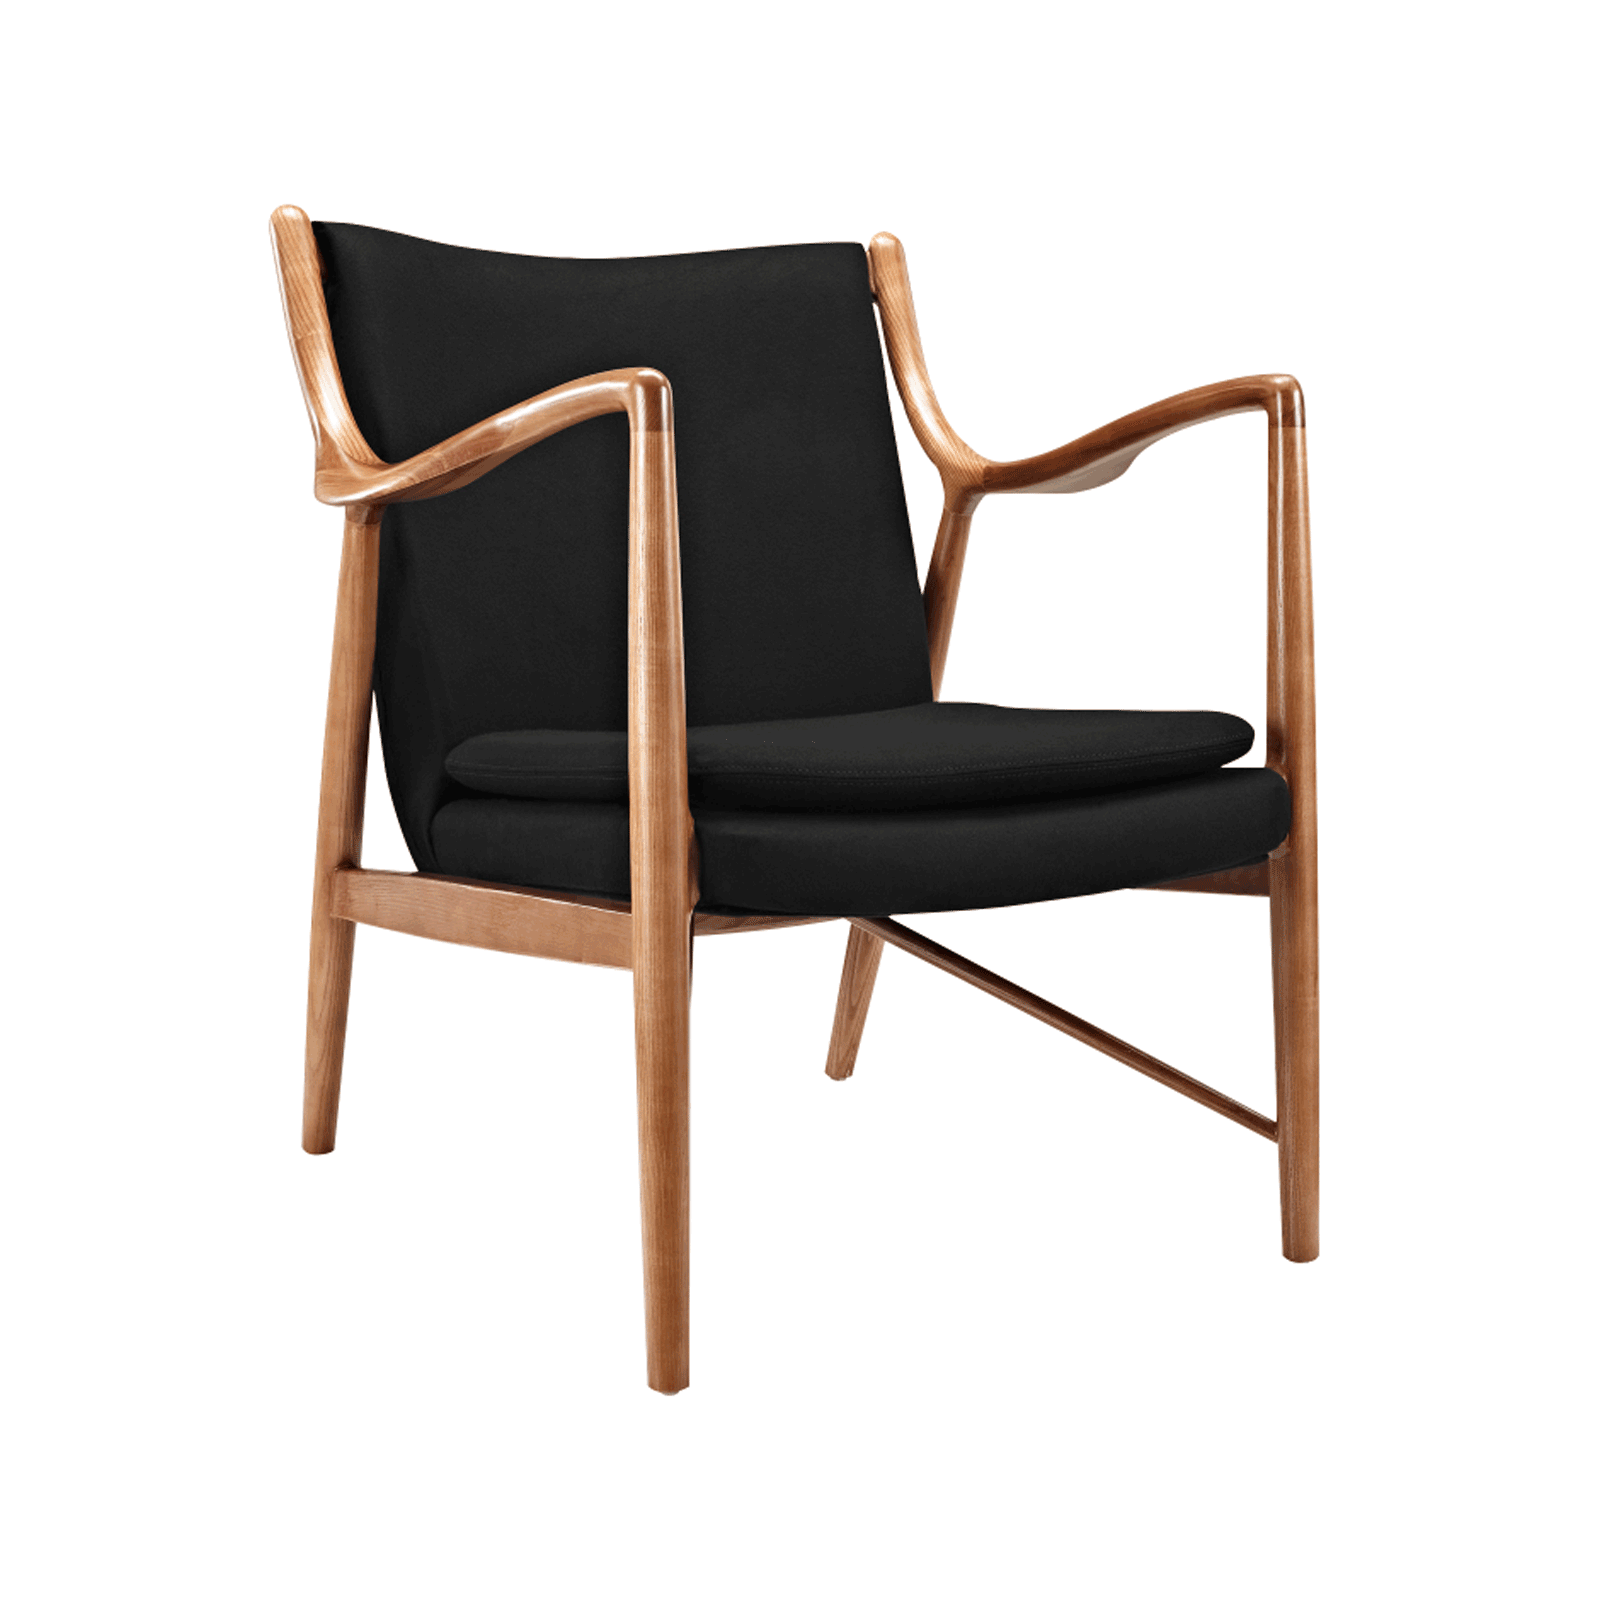 What Could Be More Luxurious Than A Comfortable Chair?